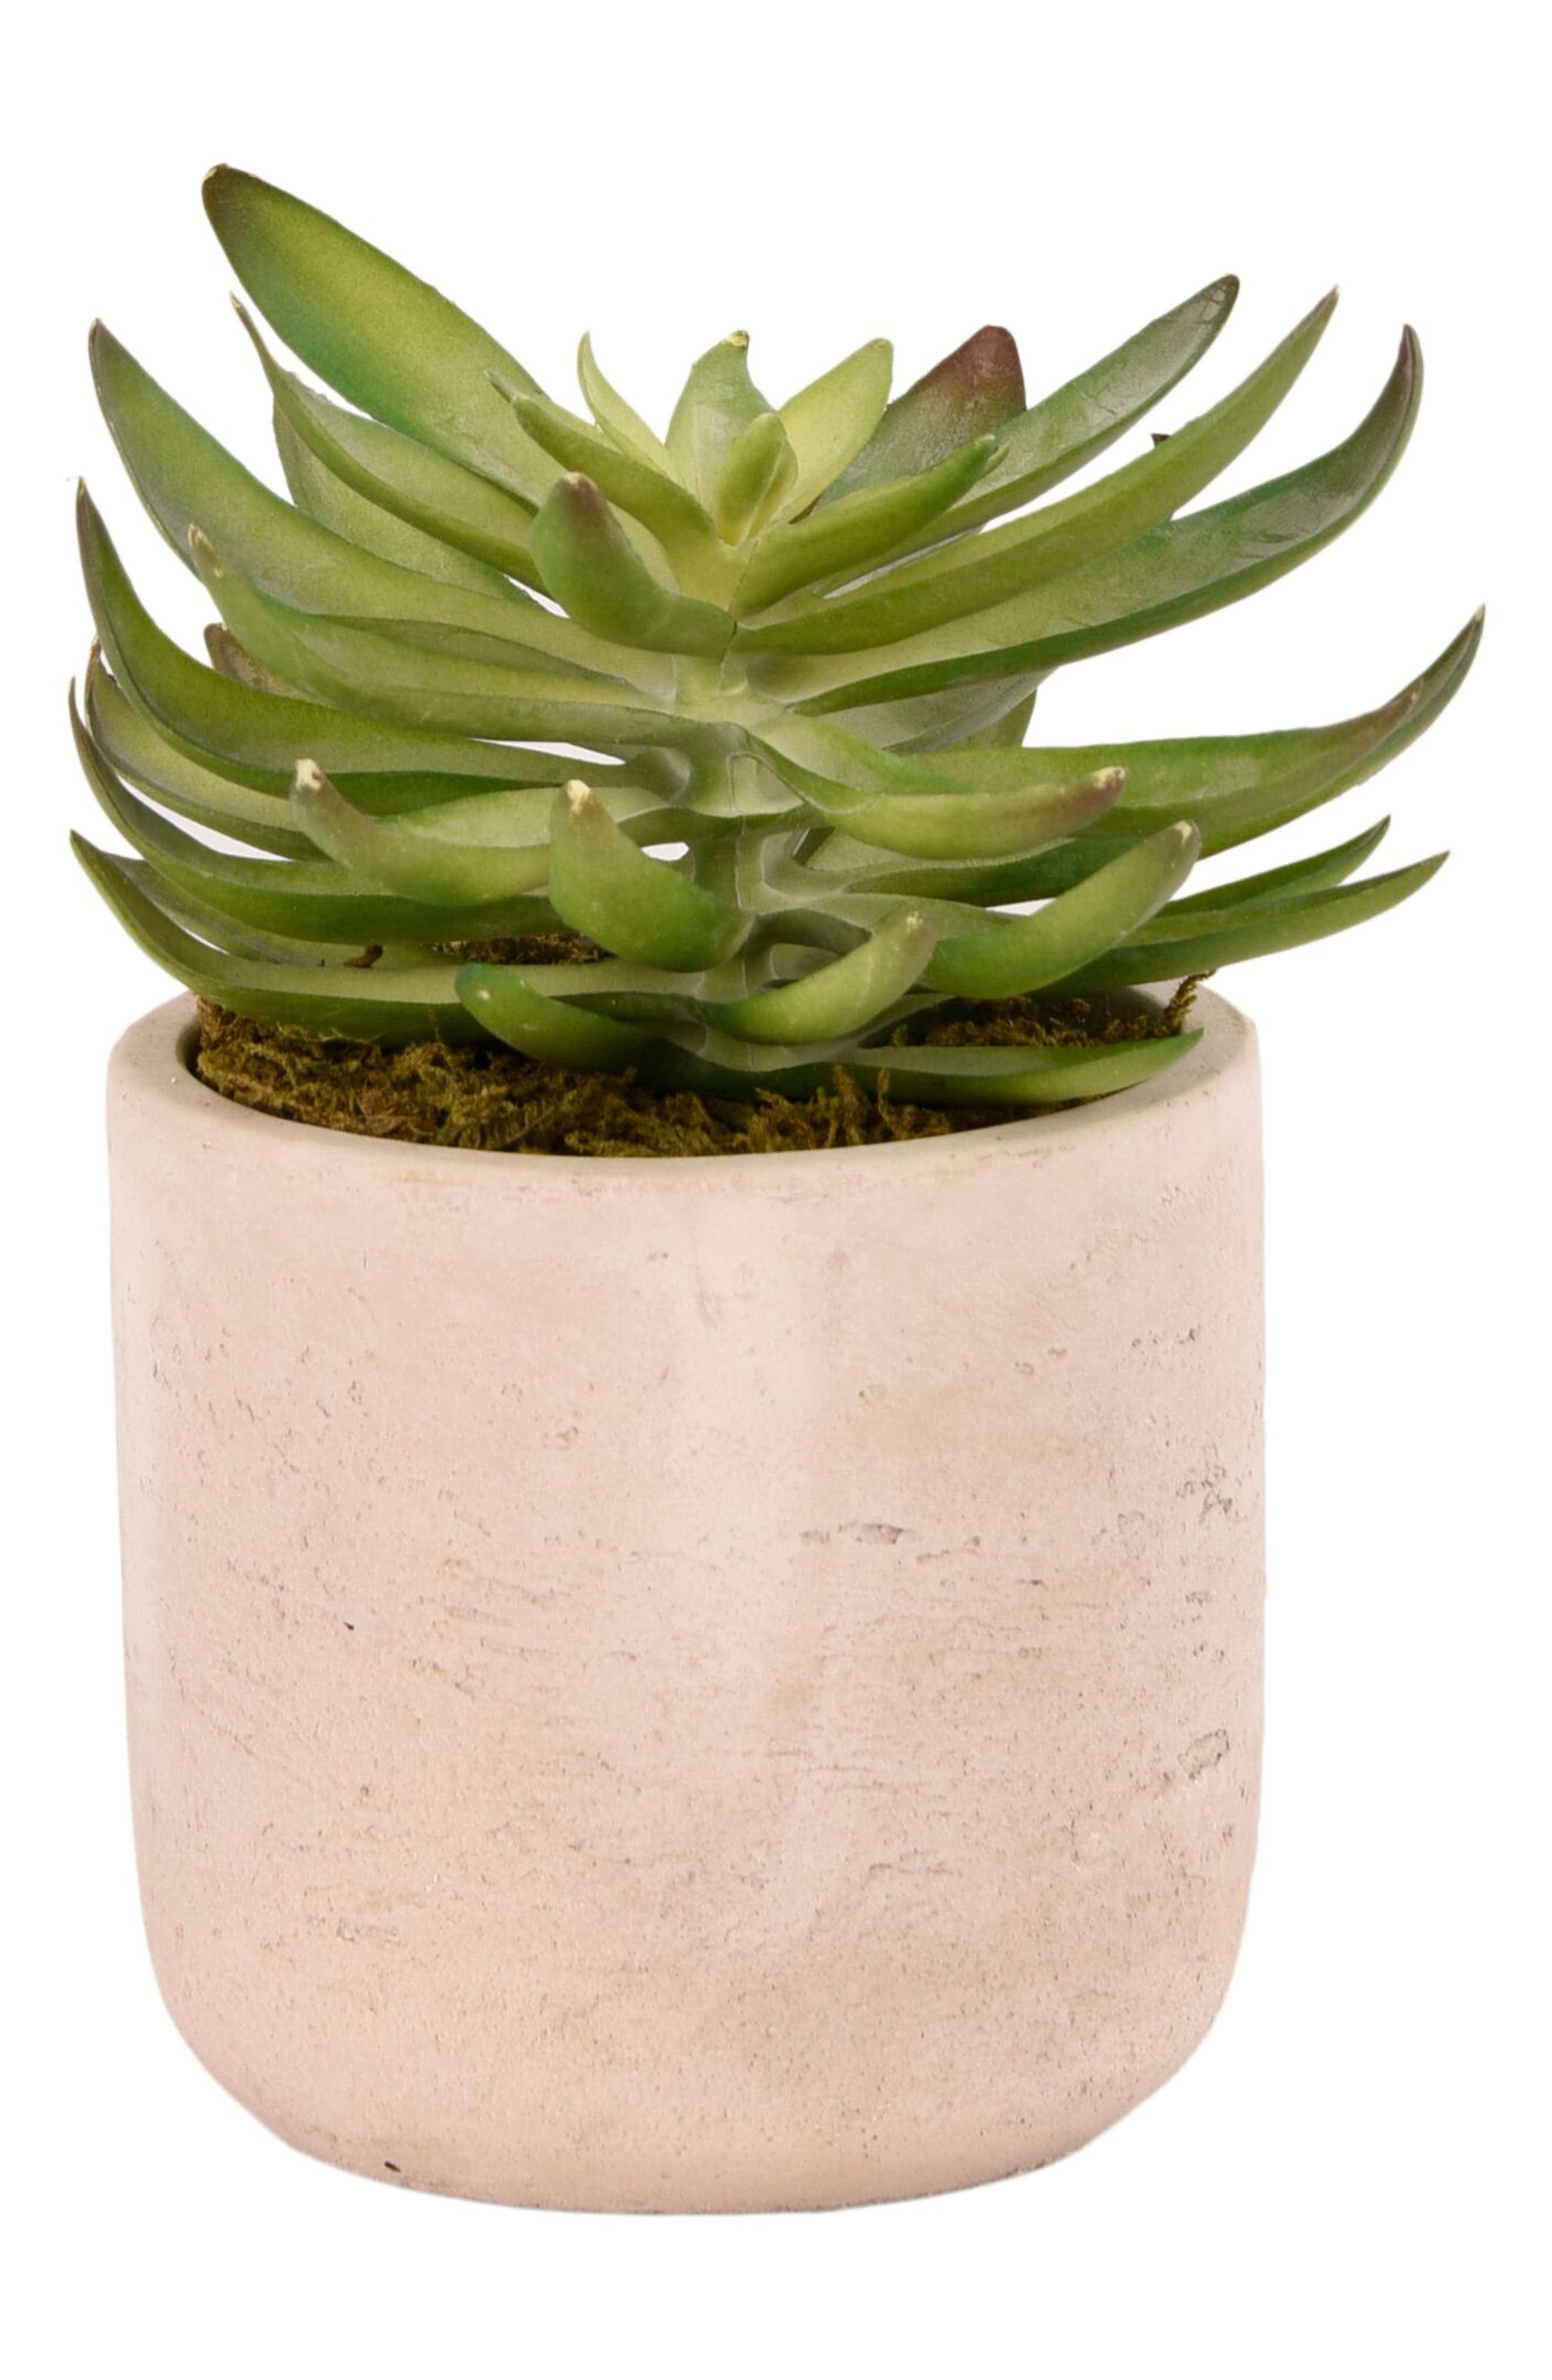 No need for a green thumb when you\\\'ve got this charming faux-echeveria planter to add a touch of desert cheer to any minimalist space. Style Name: Bloomr Desert Echeveria Succulent Planter Decoration. Style Number: 5820991. Available in stores.